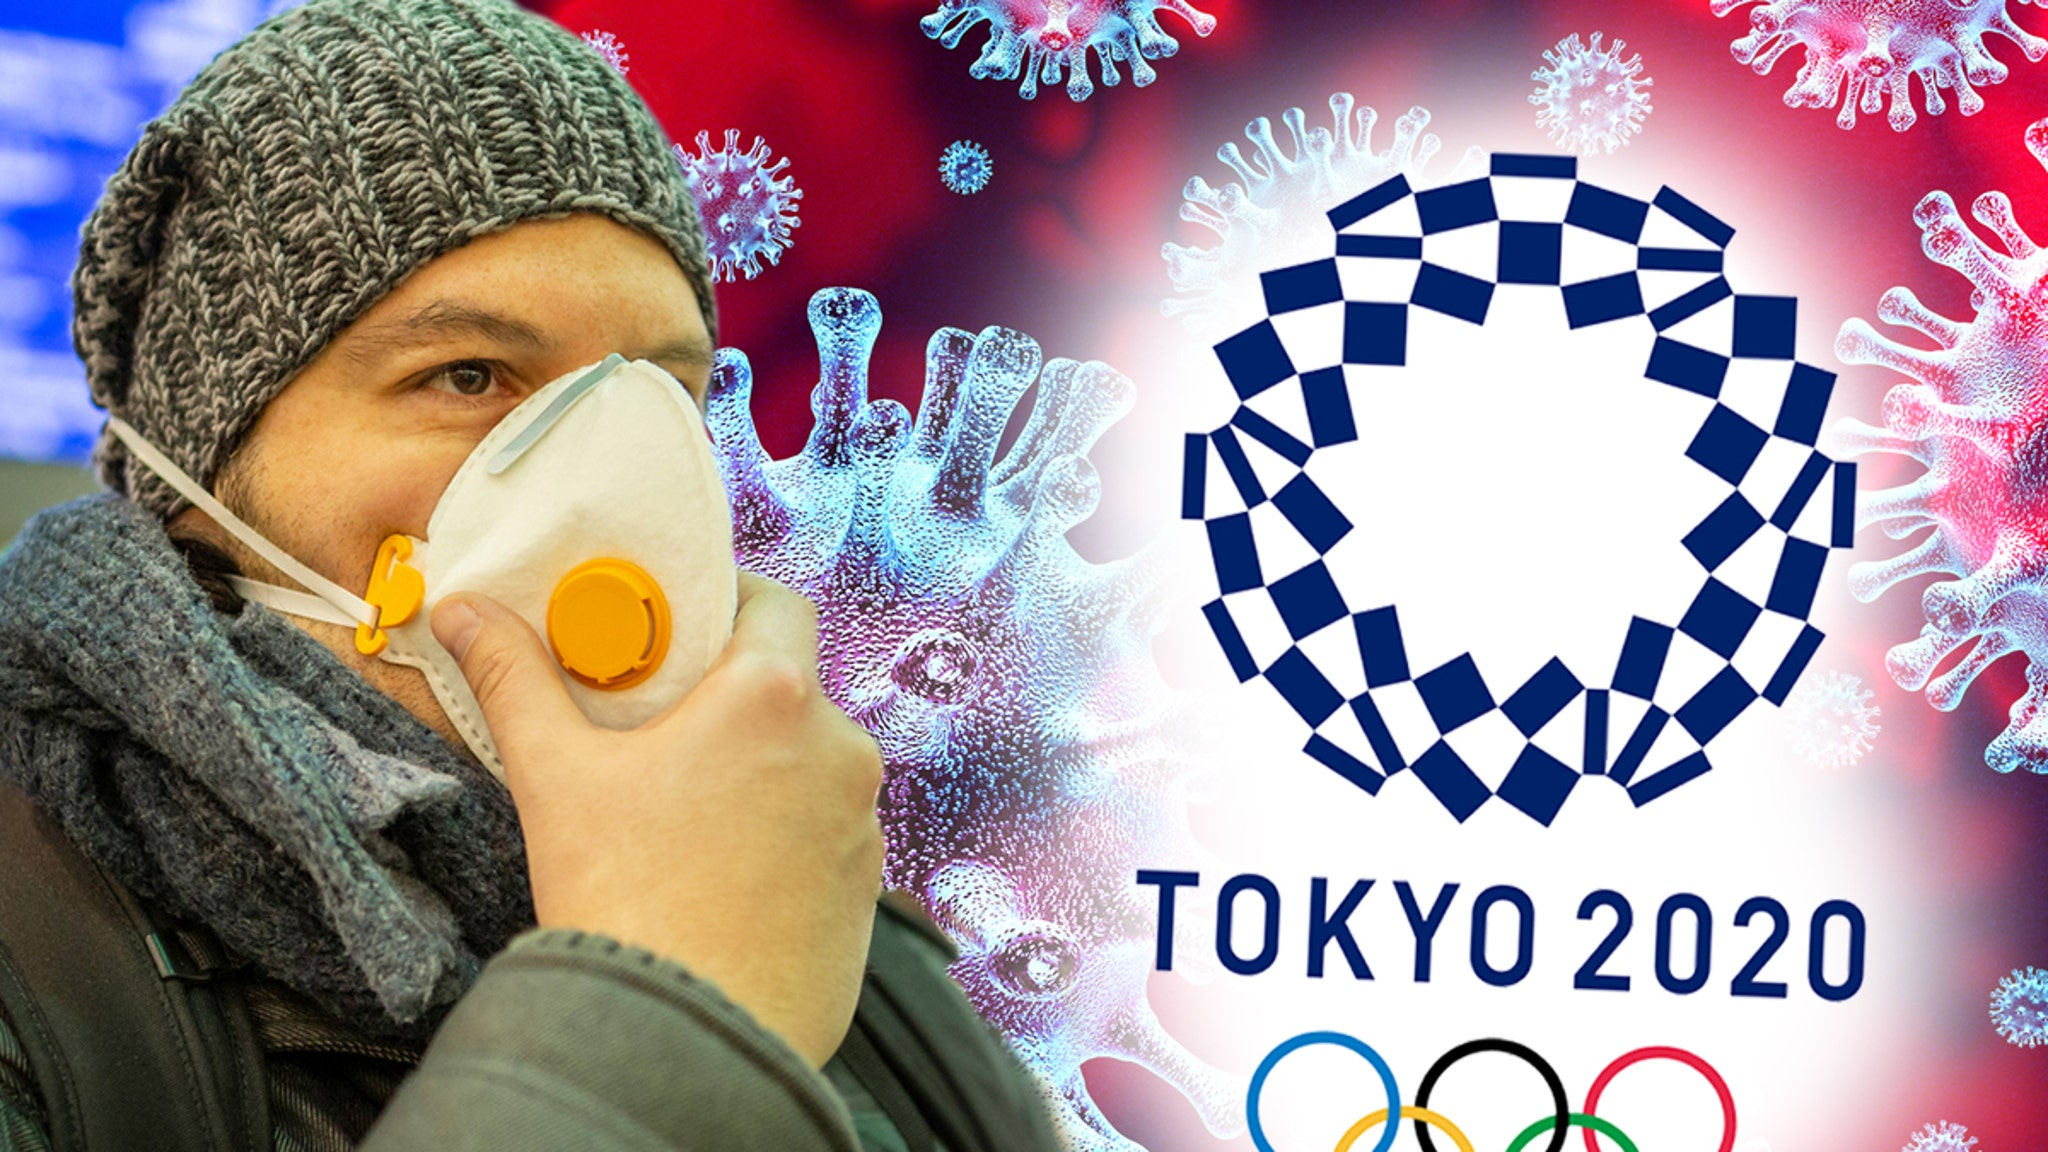 2020 Olympics Could Be 'Canceled' Over Coronavirus Outbreak, Official Says